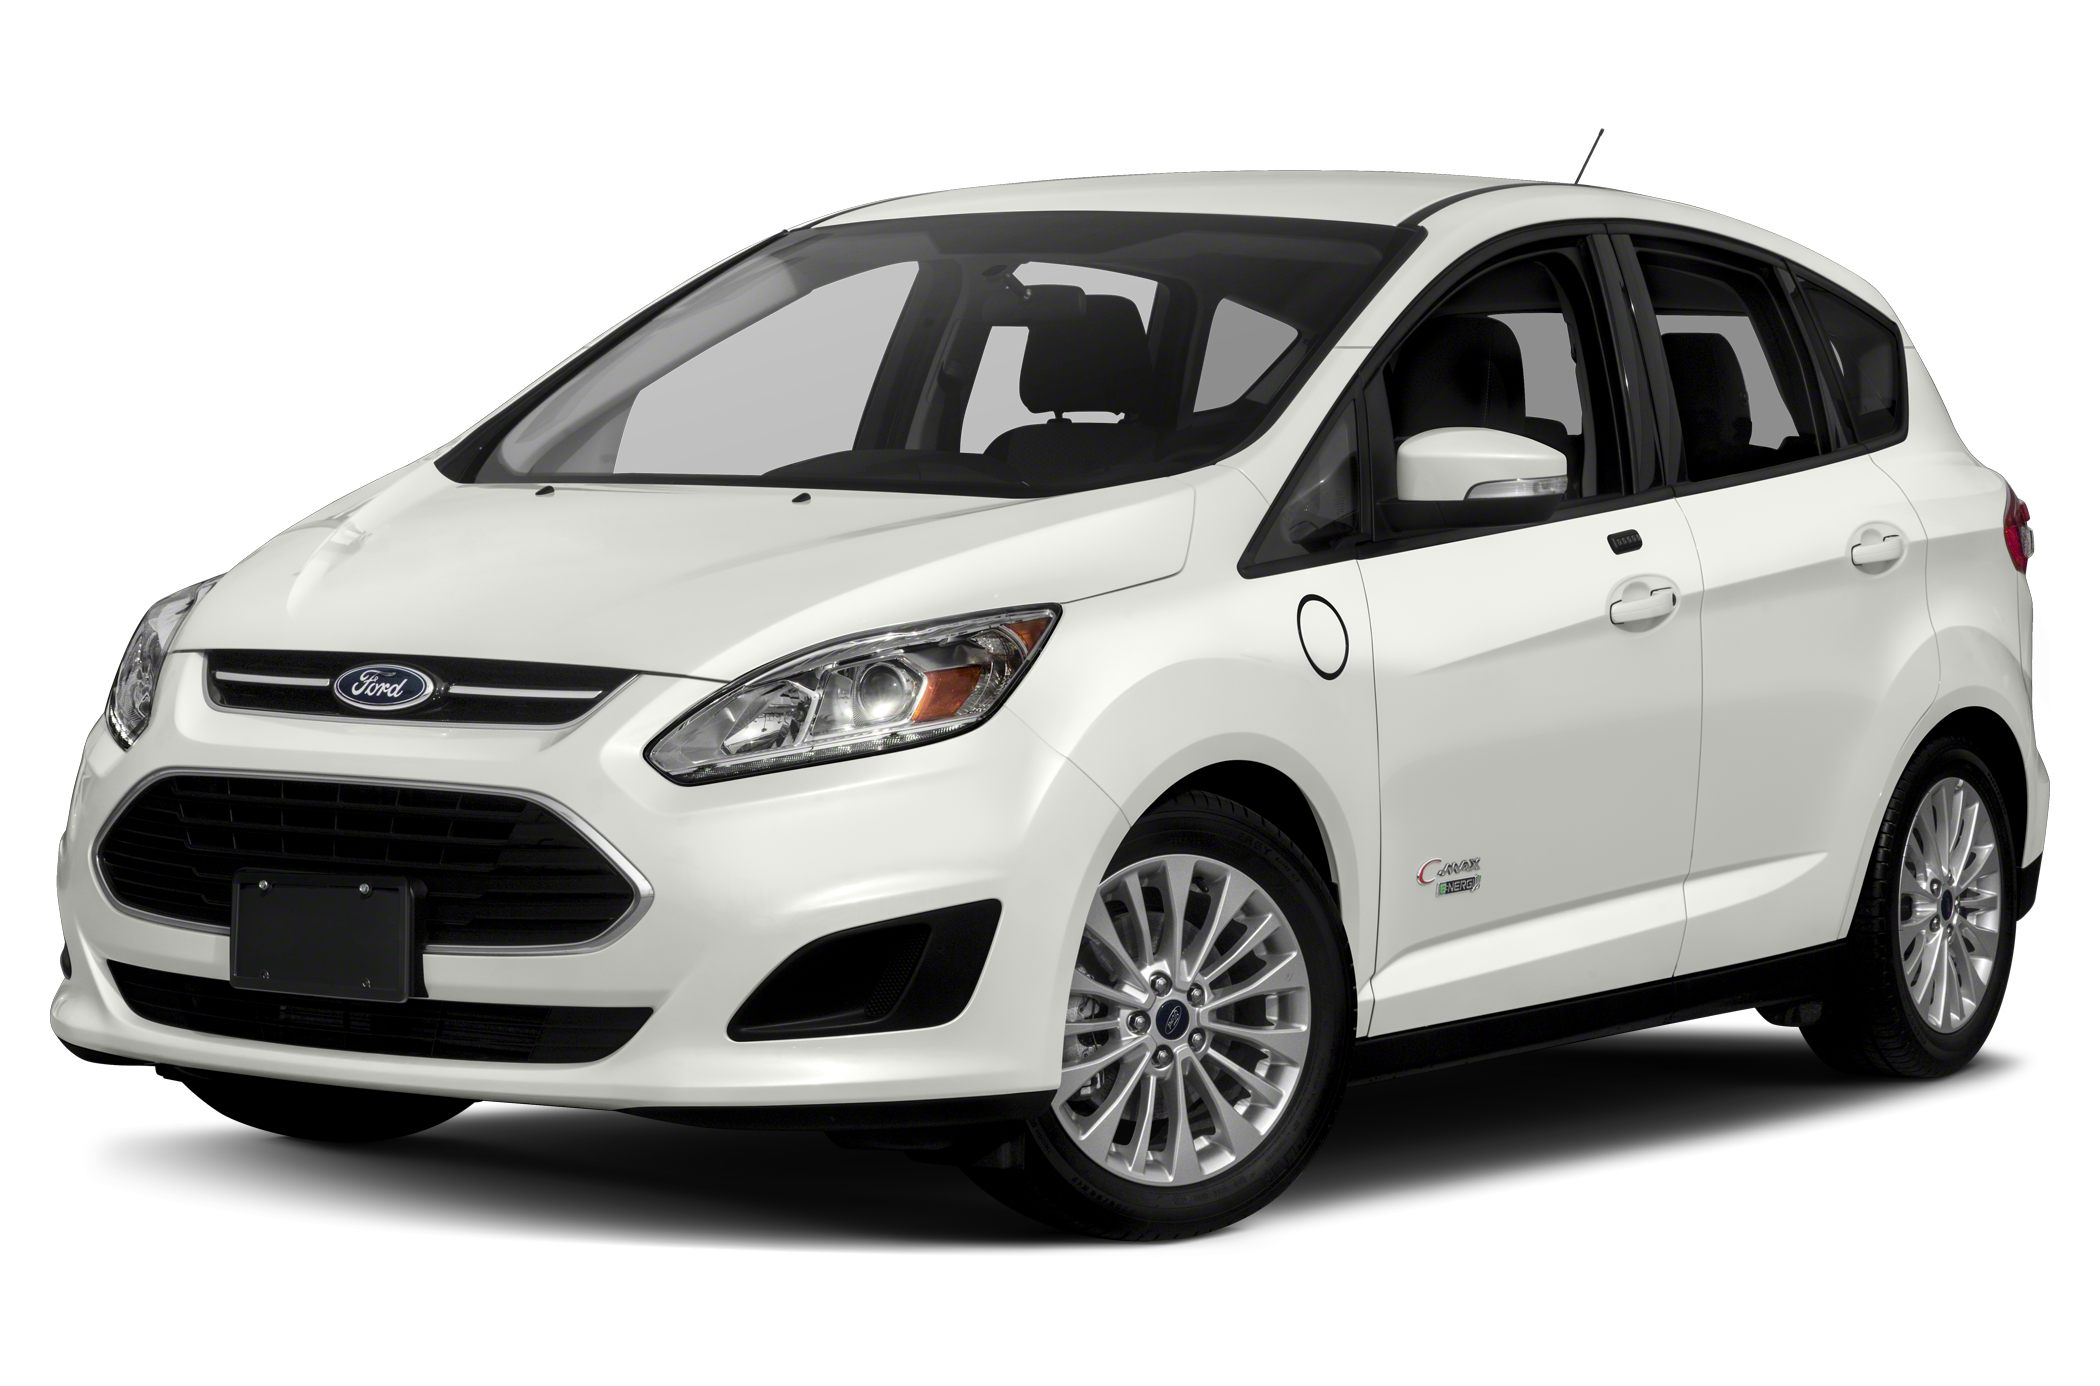 2017 Ford C-Max Energi Titanium HYBRID BACK-UP CAMERA LEATHER HEATED FRONT SEATS BLUETOOTH RE